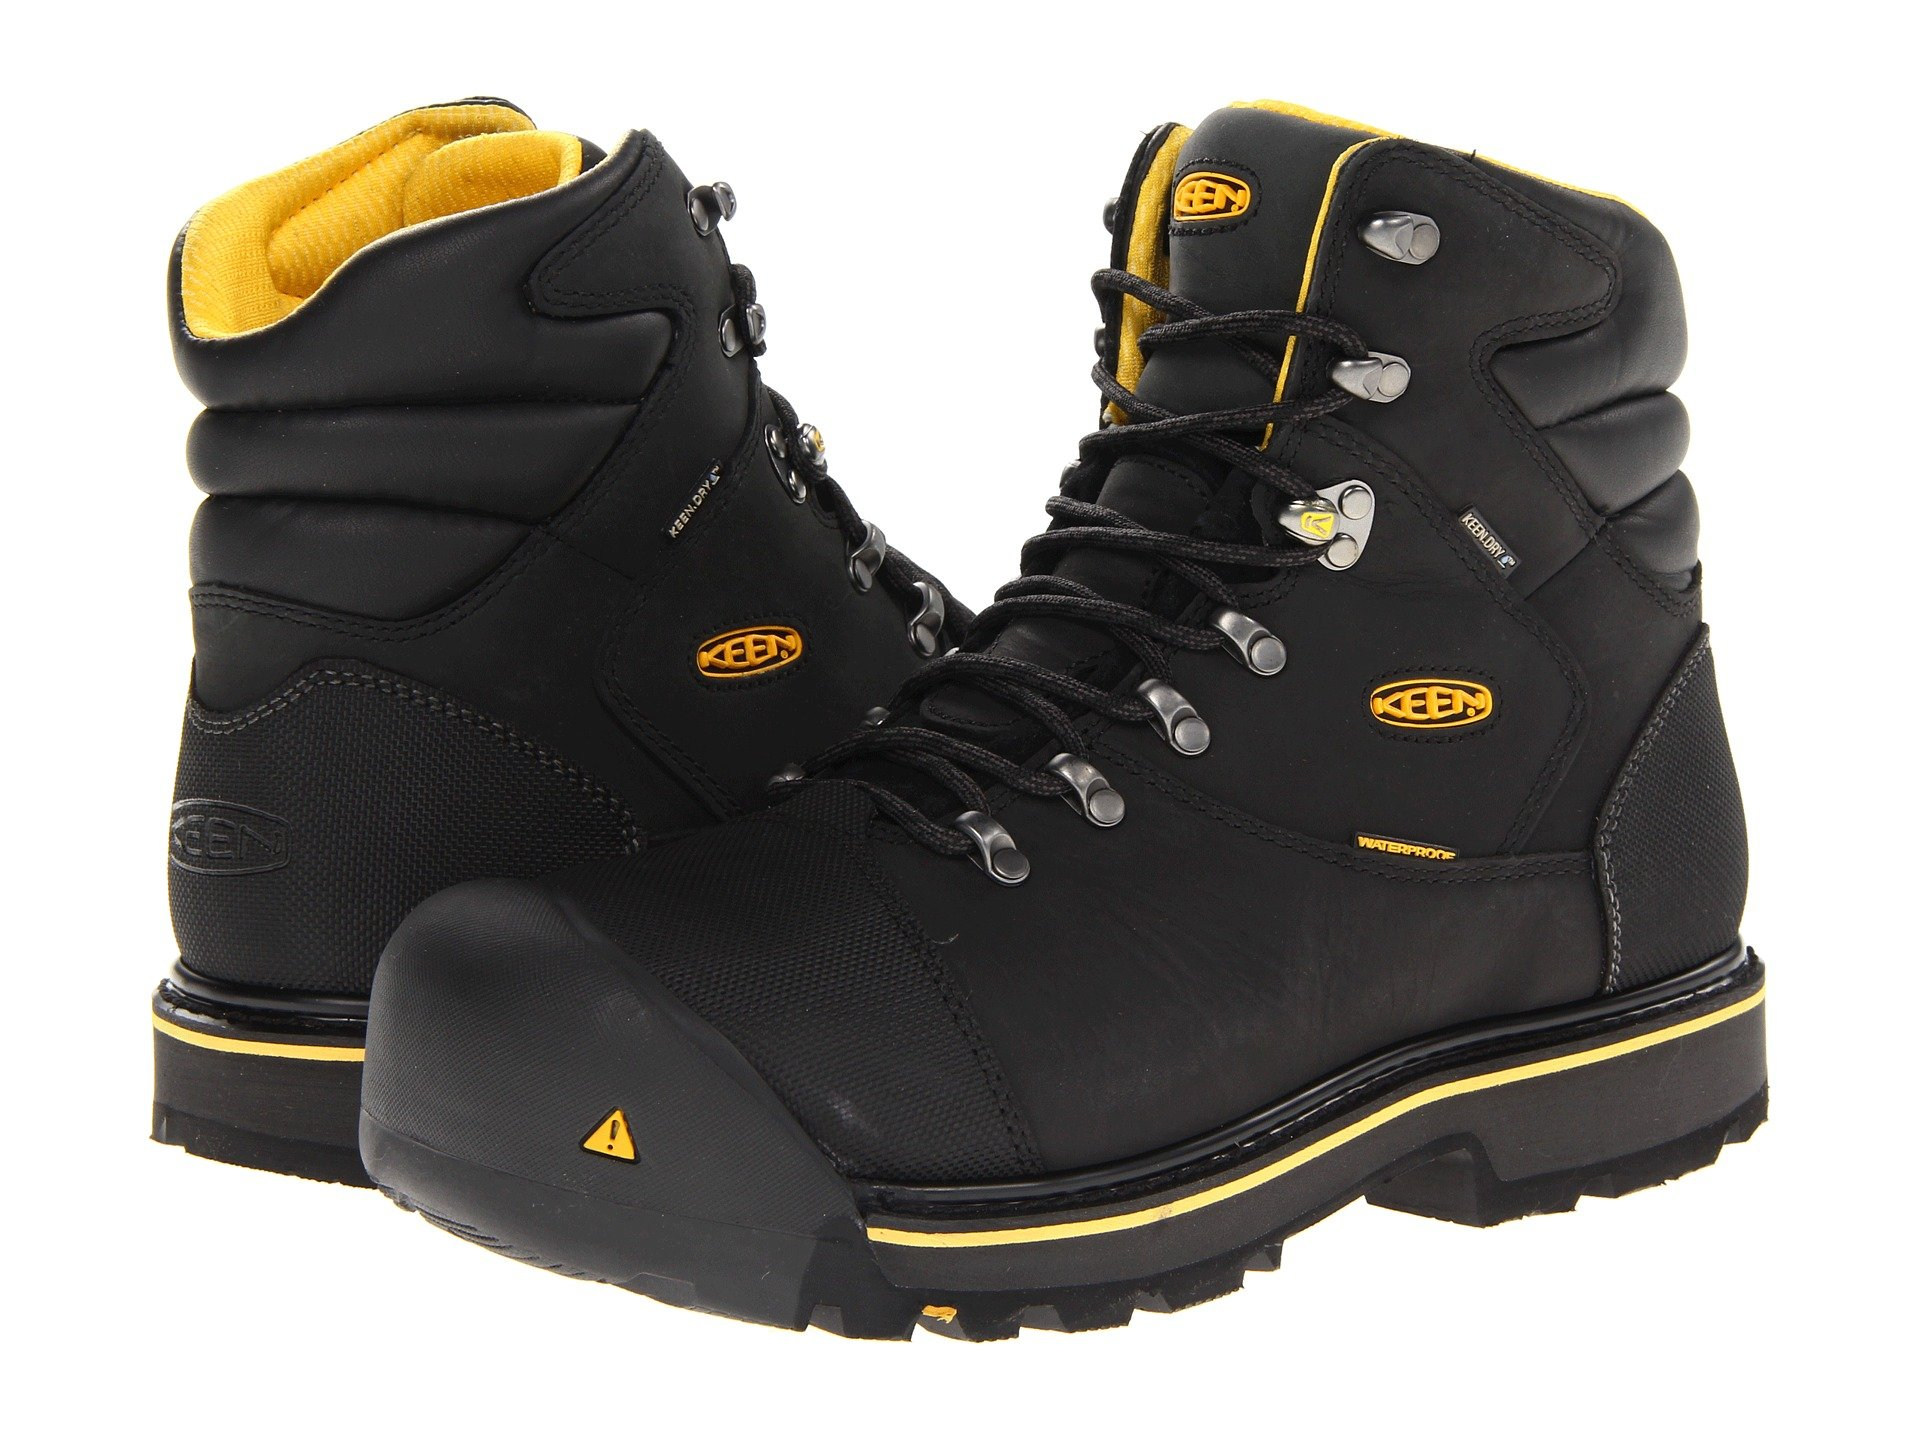 adbf7dbcc3c69b Men s Keen Utility Shoes + FREE SHIPPING